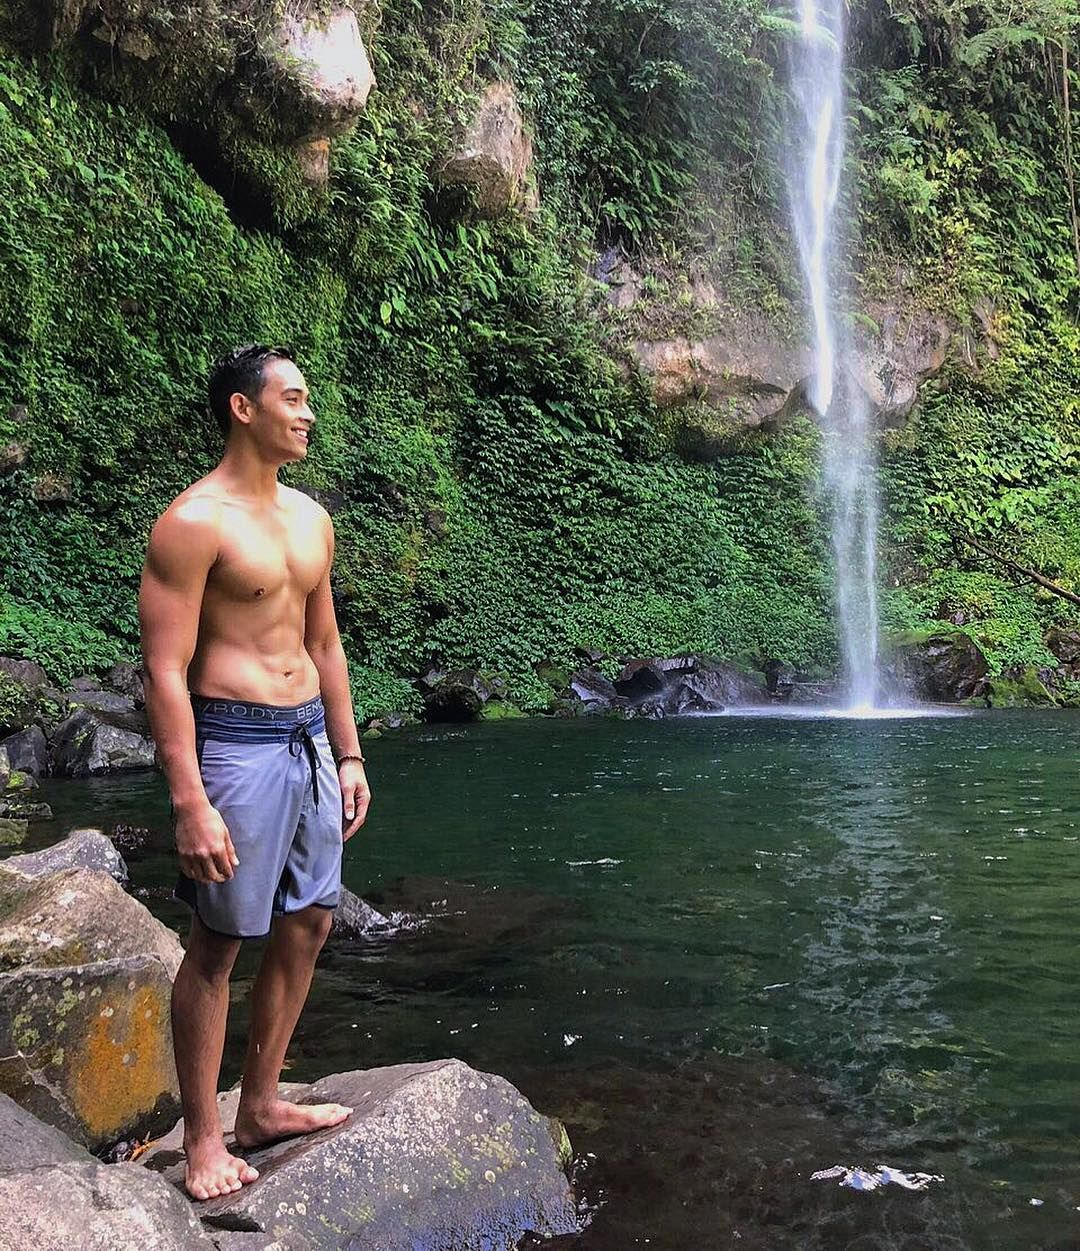 Don T Go Chasing Waterfalls Feelcamiguin Waterfall Instagram Don T Go